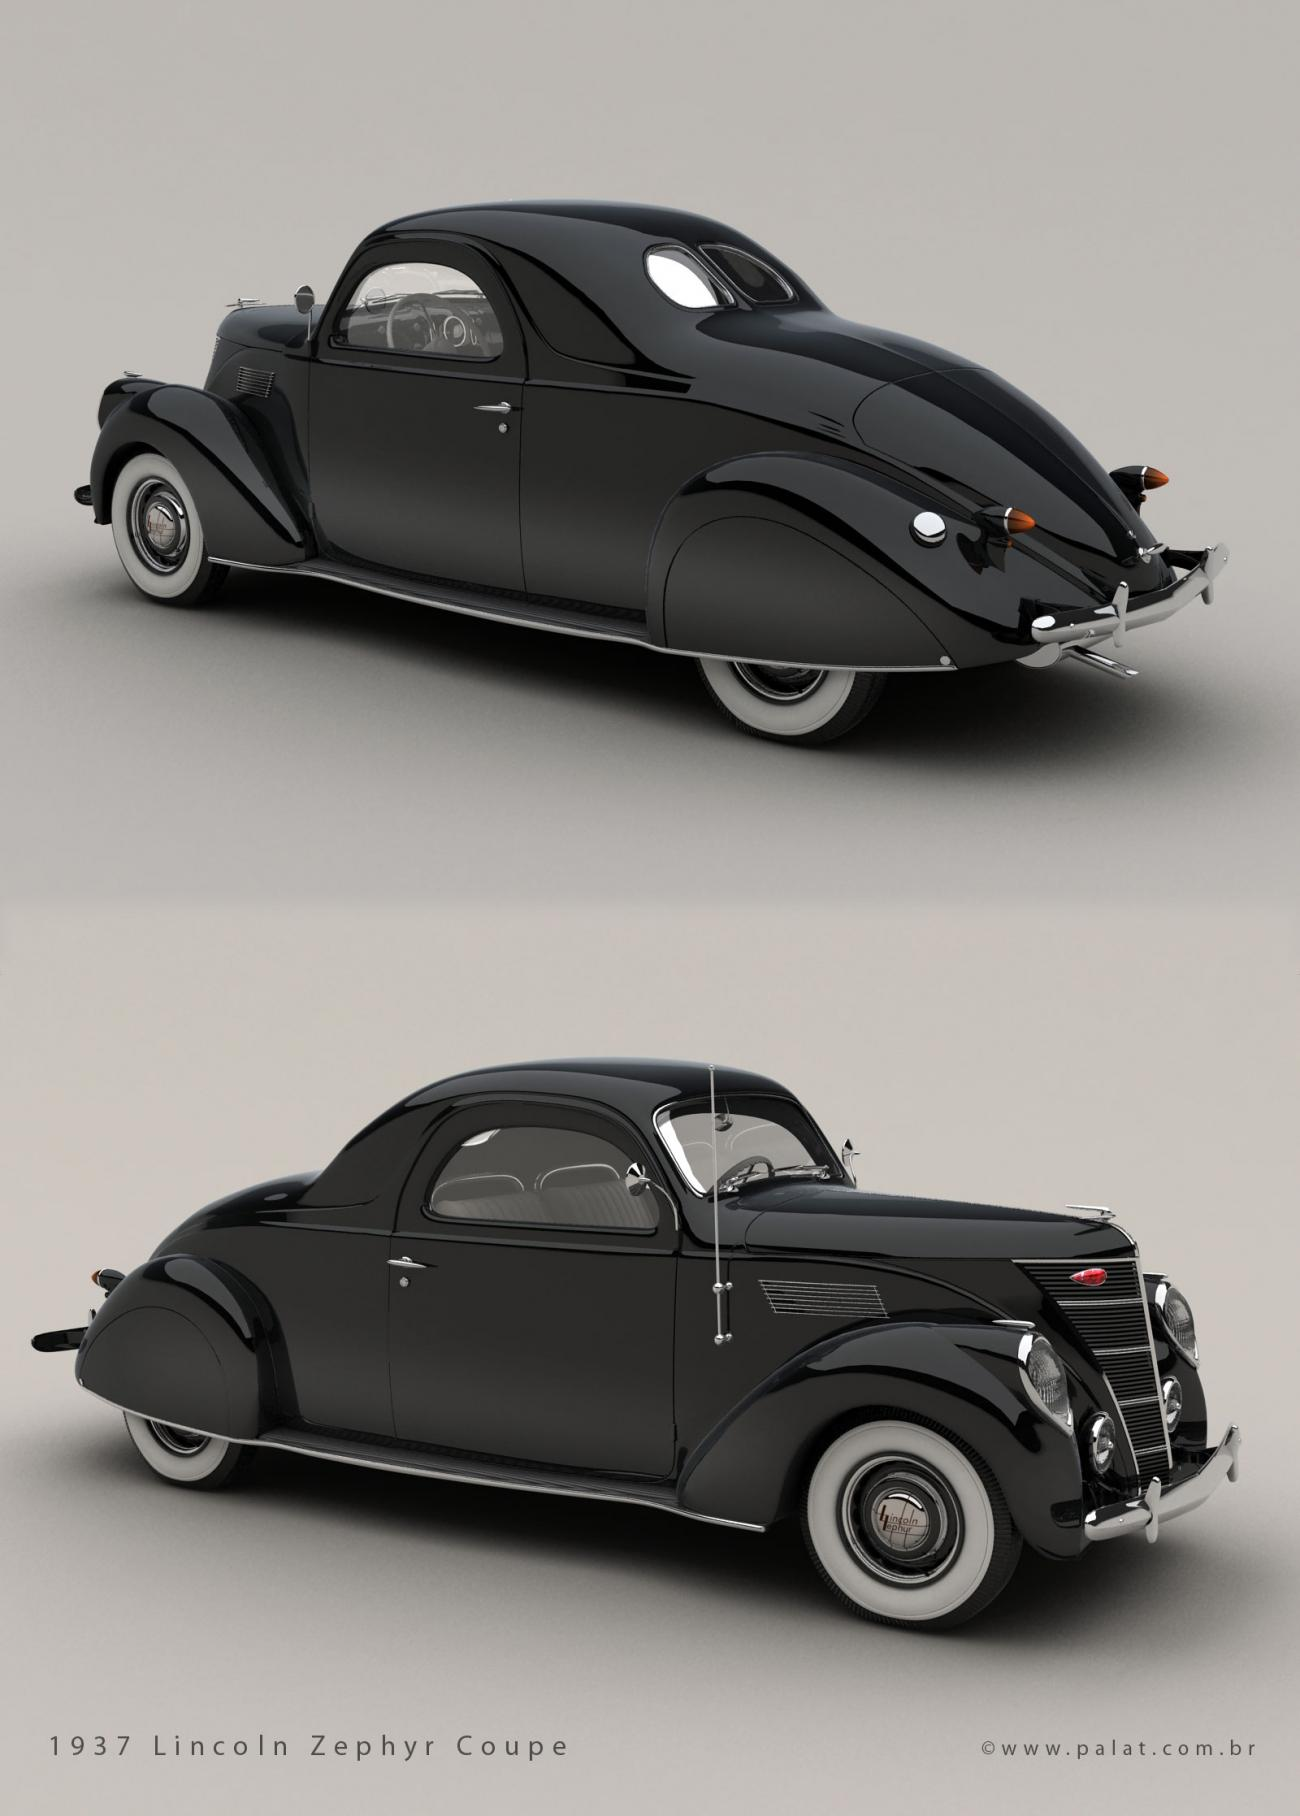 1937 Lincoln Zephyr Coupe